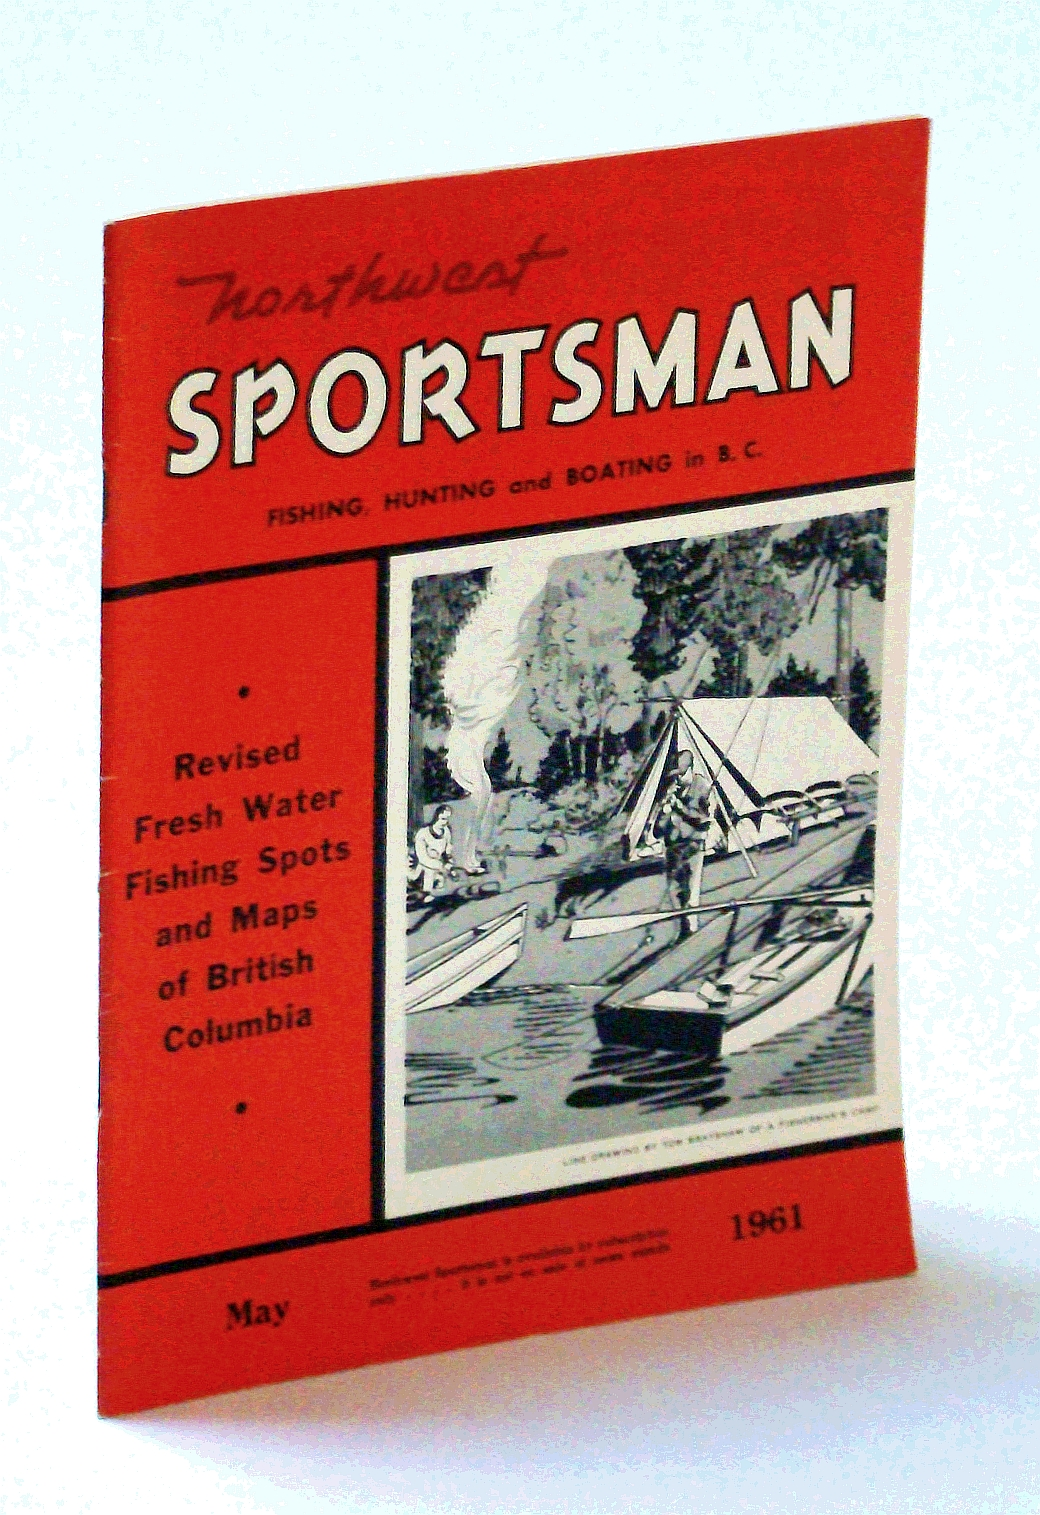 Image for Northwest Sportsman Magazine - Fishing, Hunting and Boating in B.C., May 1961 - Revised Fresh Water Fishing Spots and Maps of British Columbia